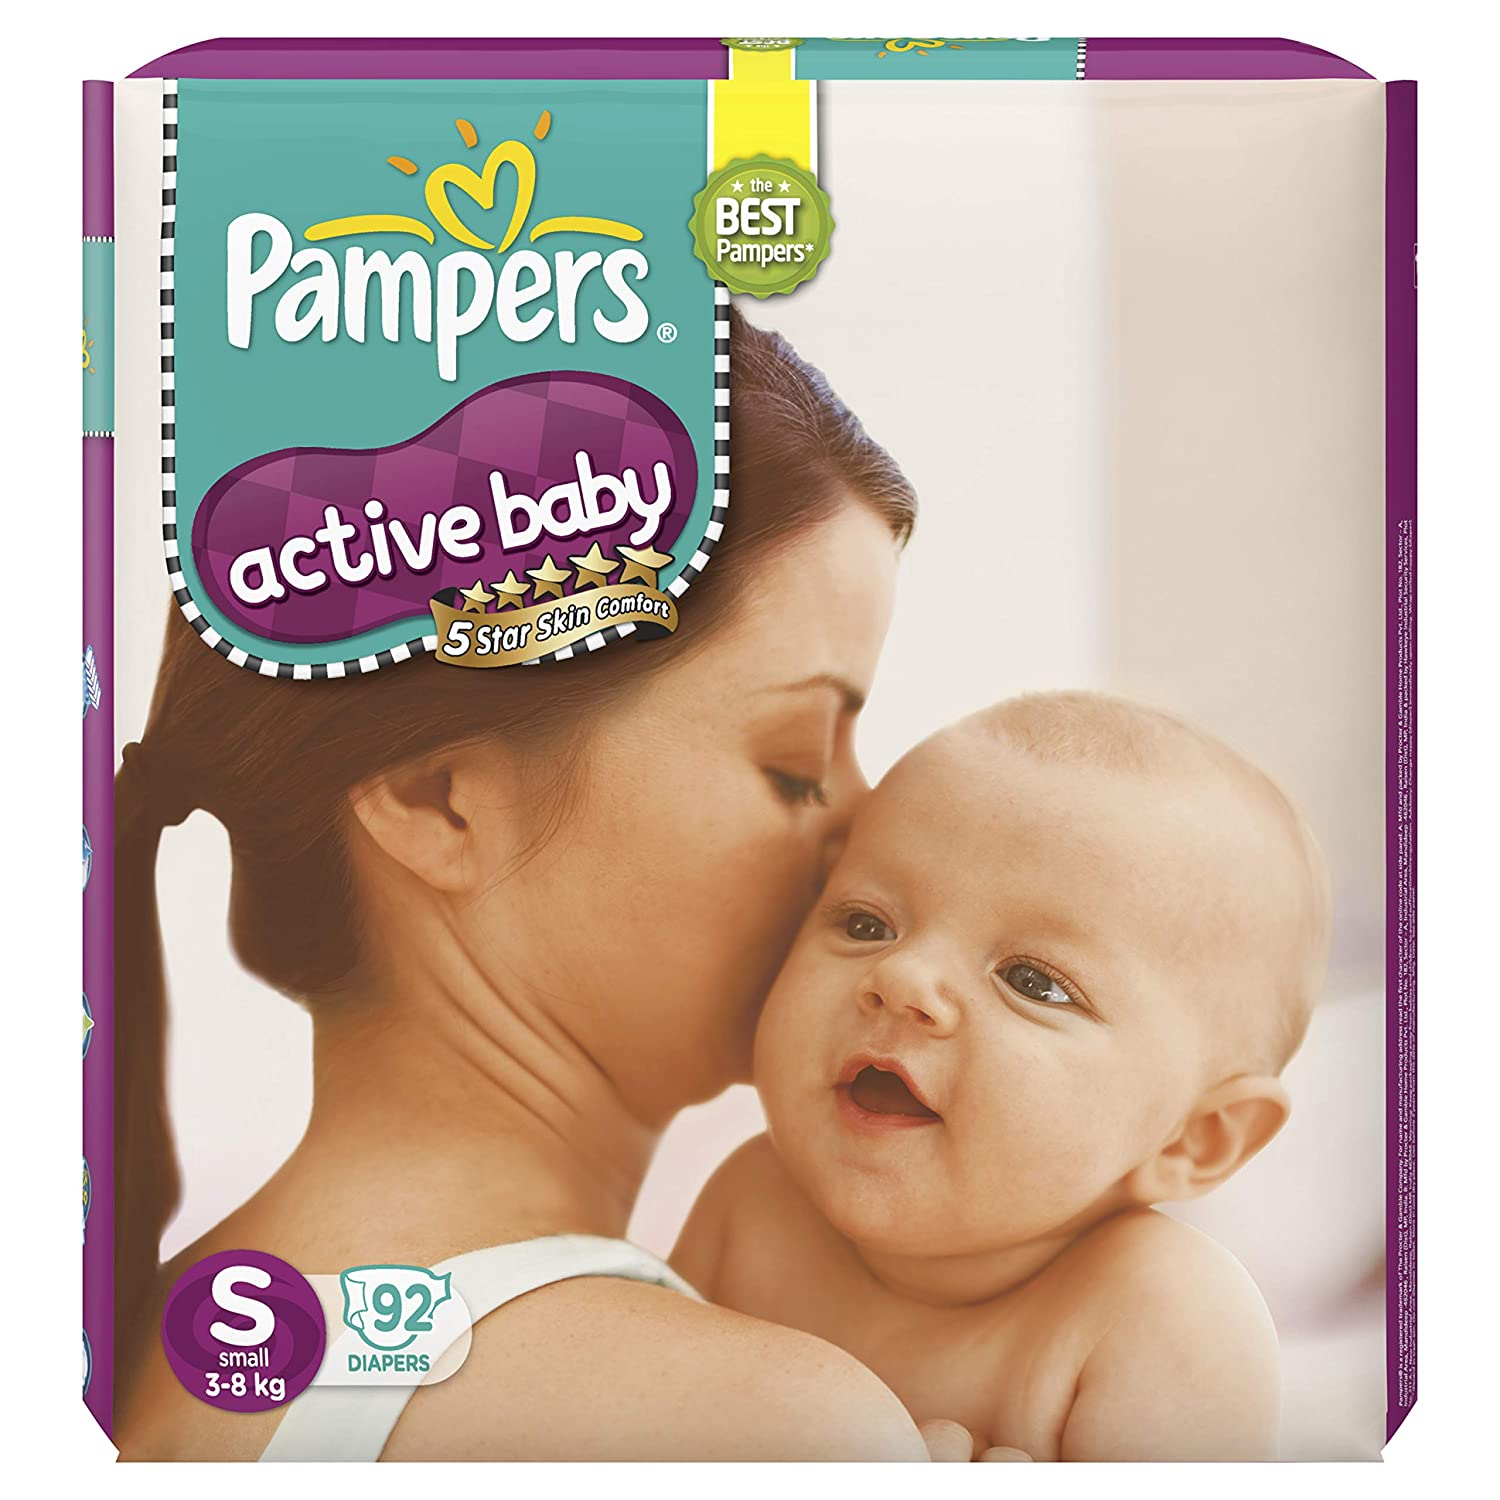 Pampers Active Baby Taped Diapers Small size